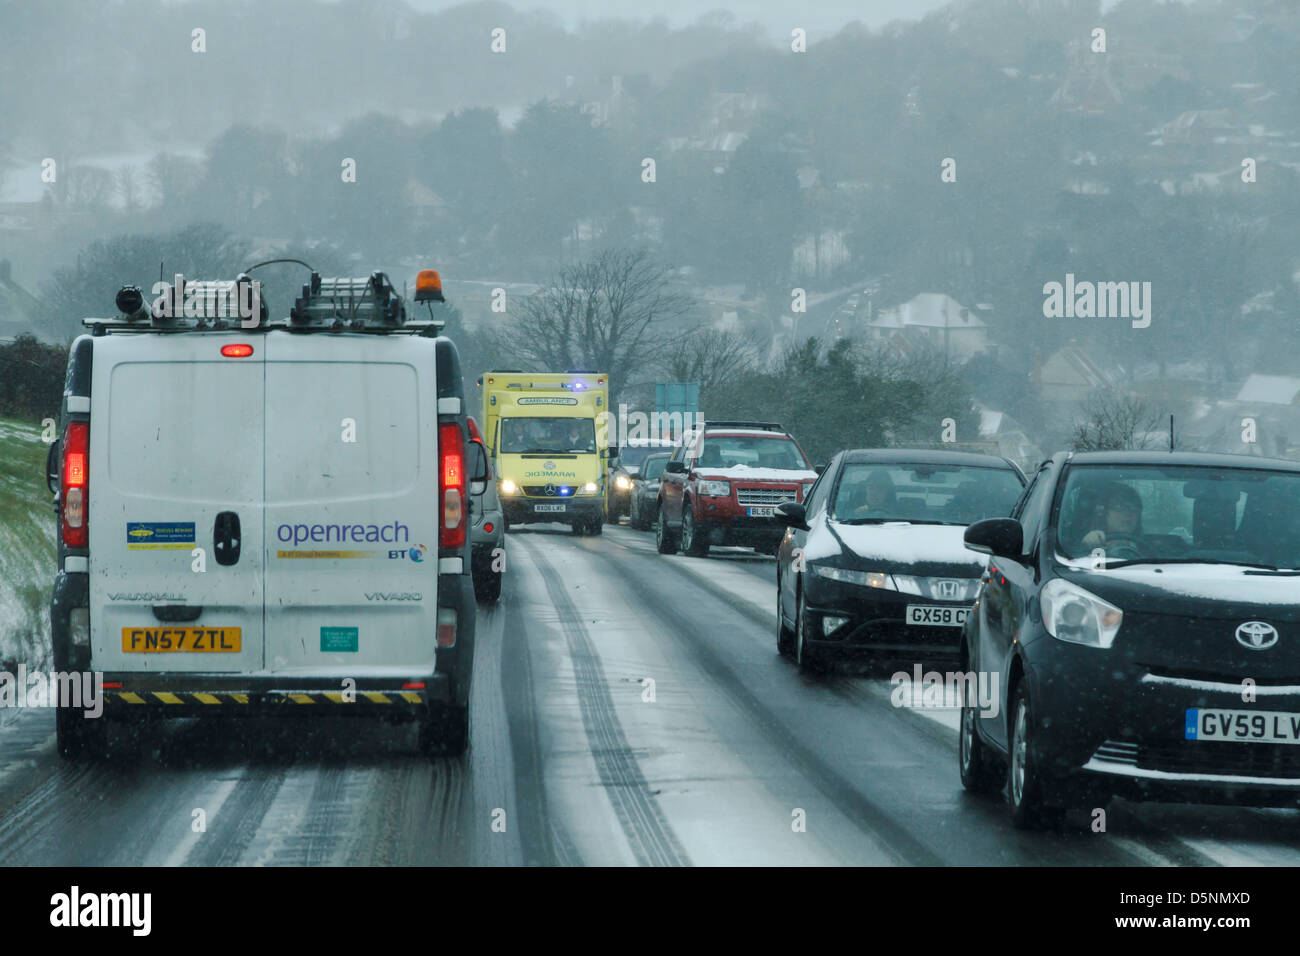 dangerous driving conditions rta road traffic accident snow snowy ice icy blizzard covered slippery police ambulance - Stock Image